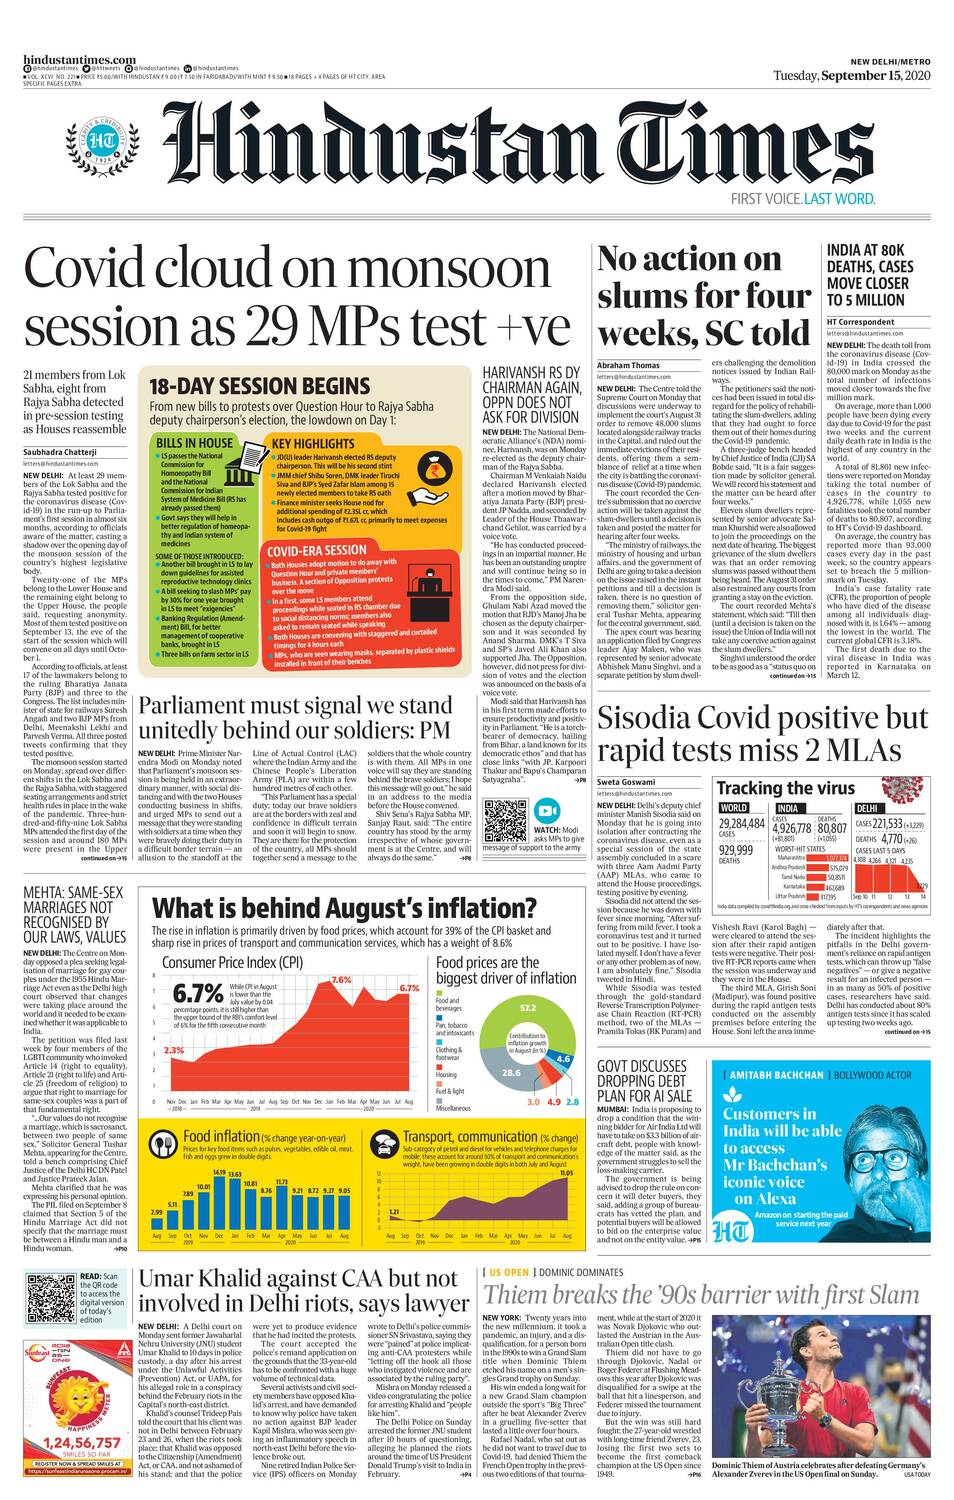 Newspaper Headlines: 25 MPs Test Positive For Coronavirus As Parliament Session Begins & Other Top Stories